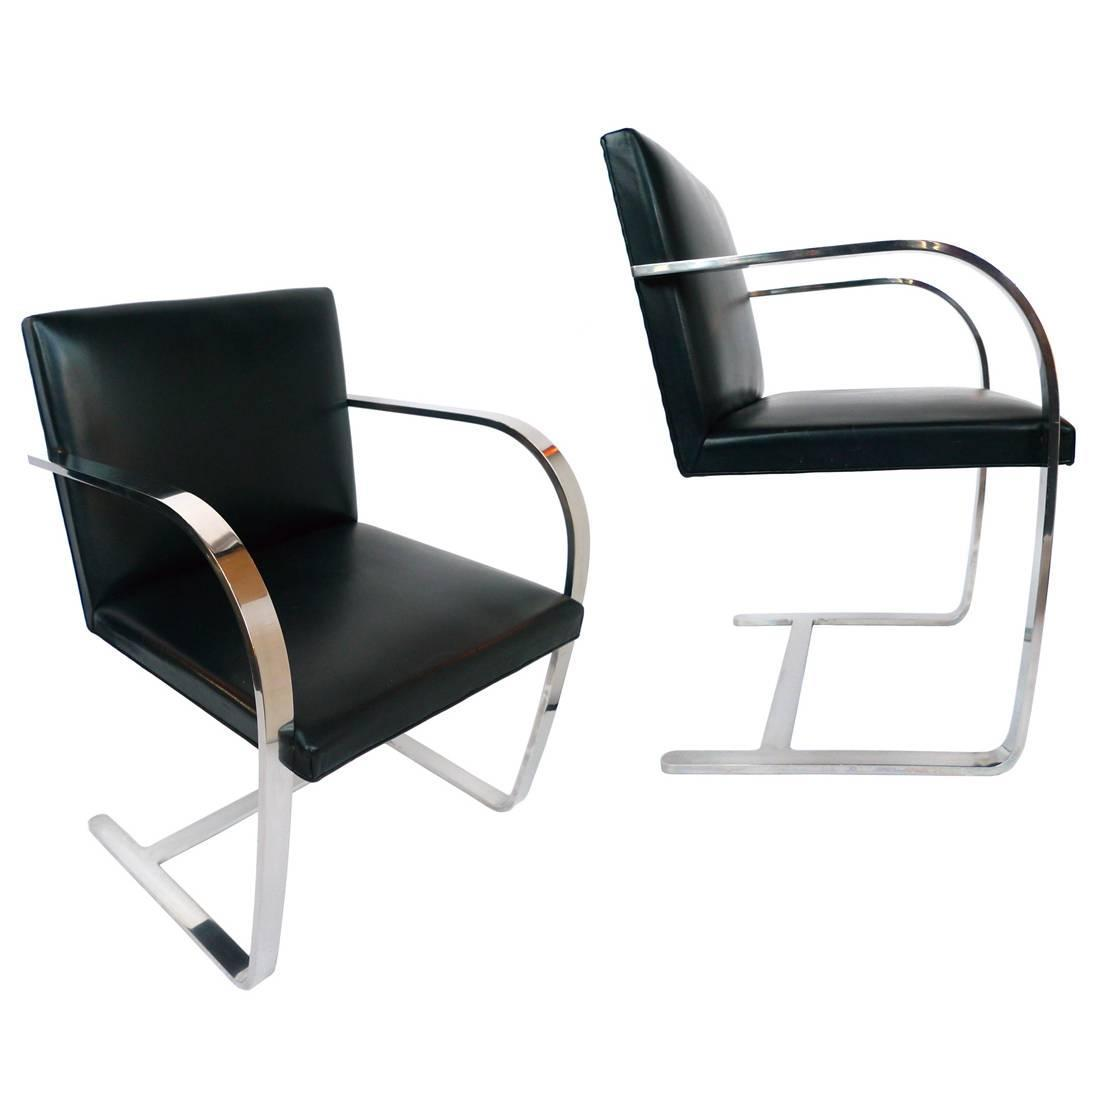 ludwig mies van der rohe brno chairs by knoll a pair for sale at 1stdibs. Black Bedroom Furniture Sets. Home Design Ideas